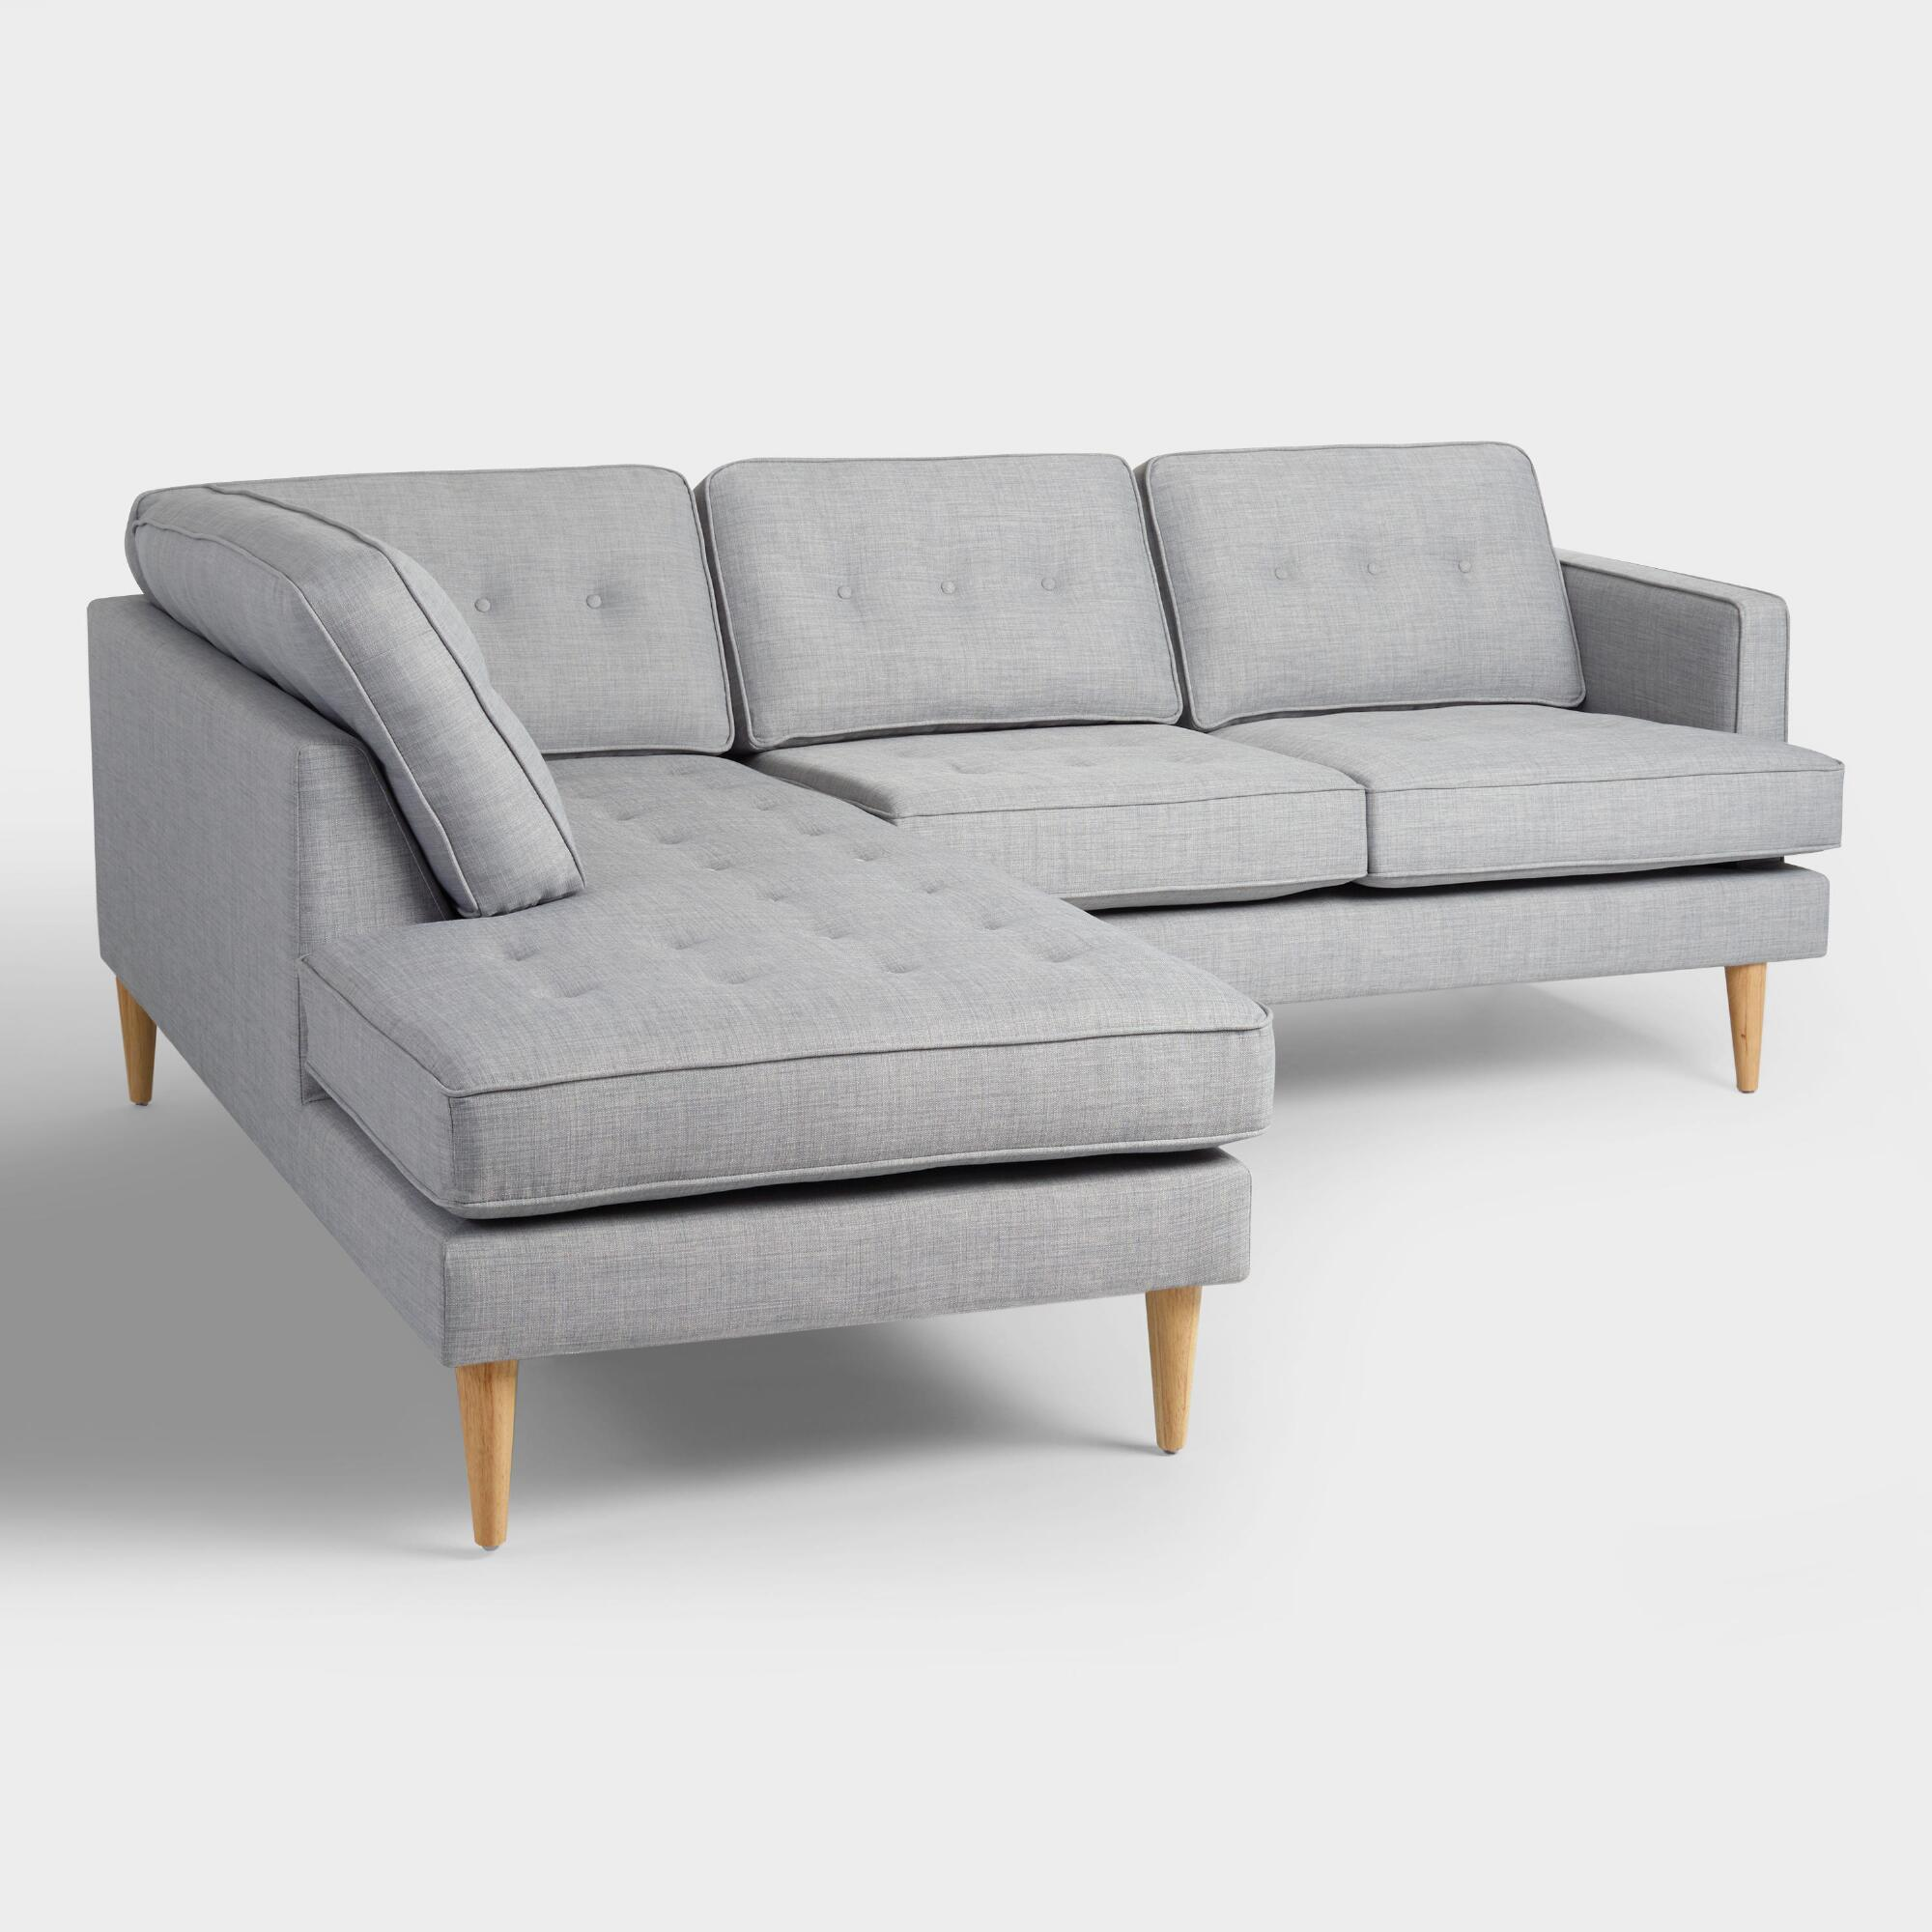 furniture serta products item contemporary sofa hughes with by upholstery number sectional ulsn chaise lfchs casual